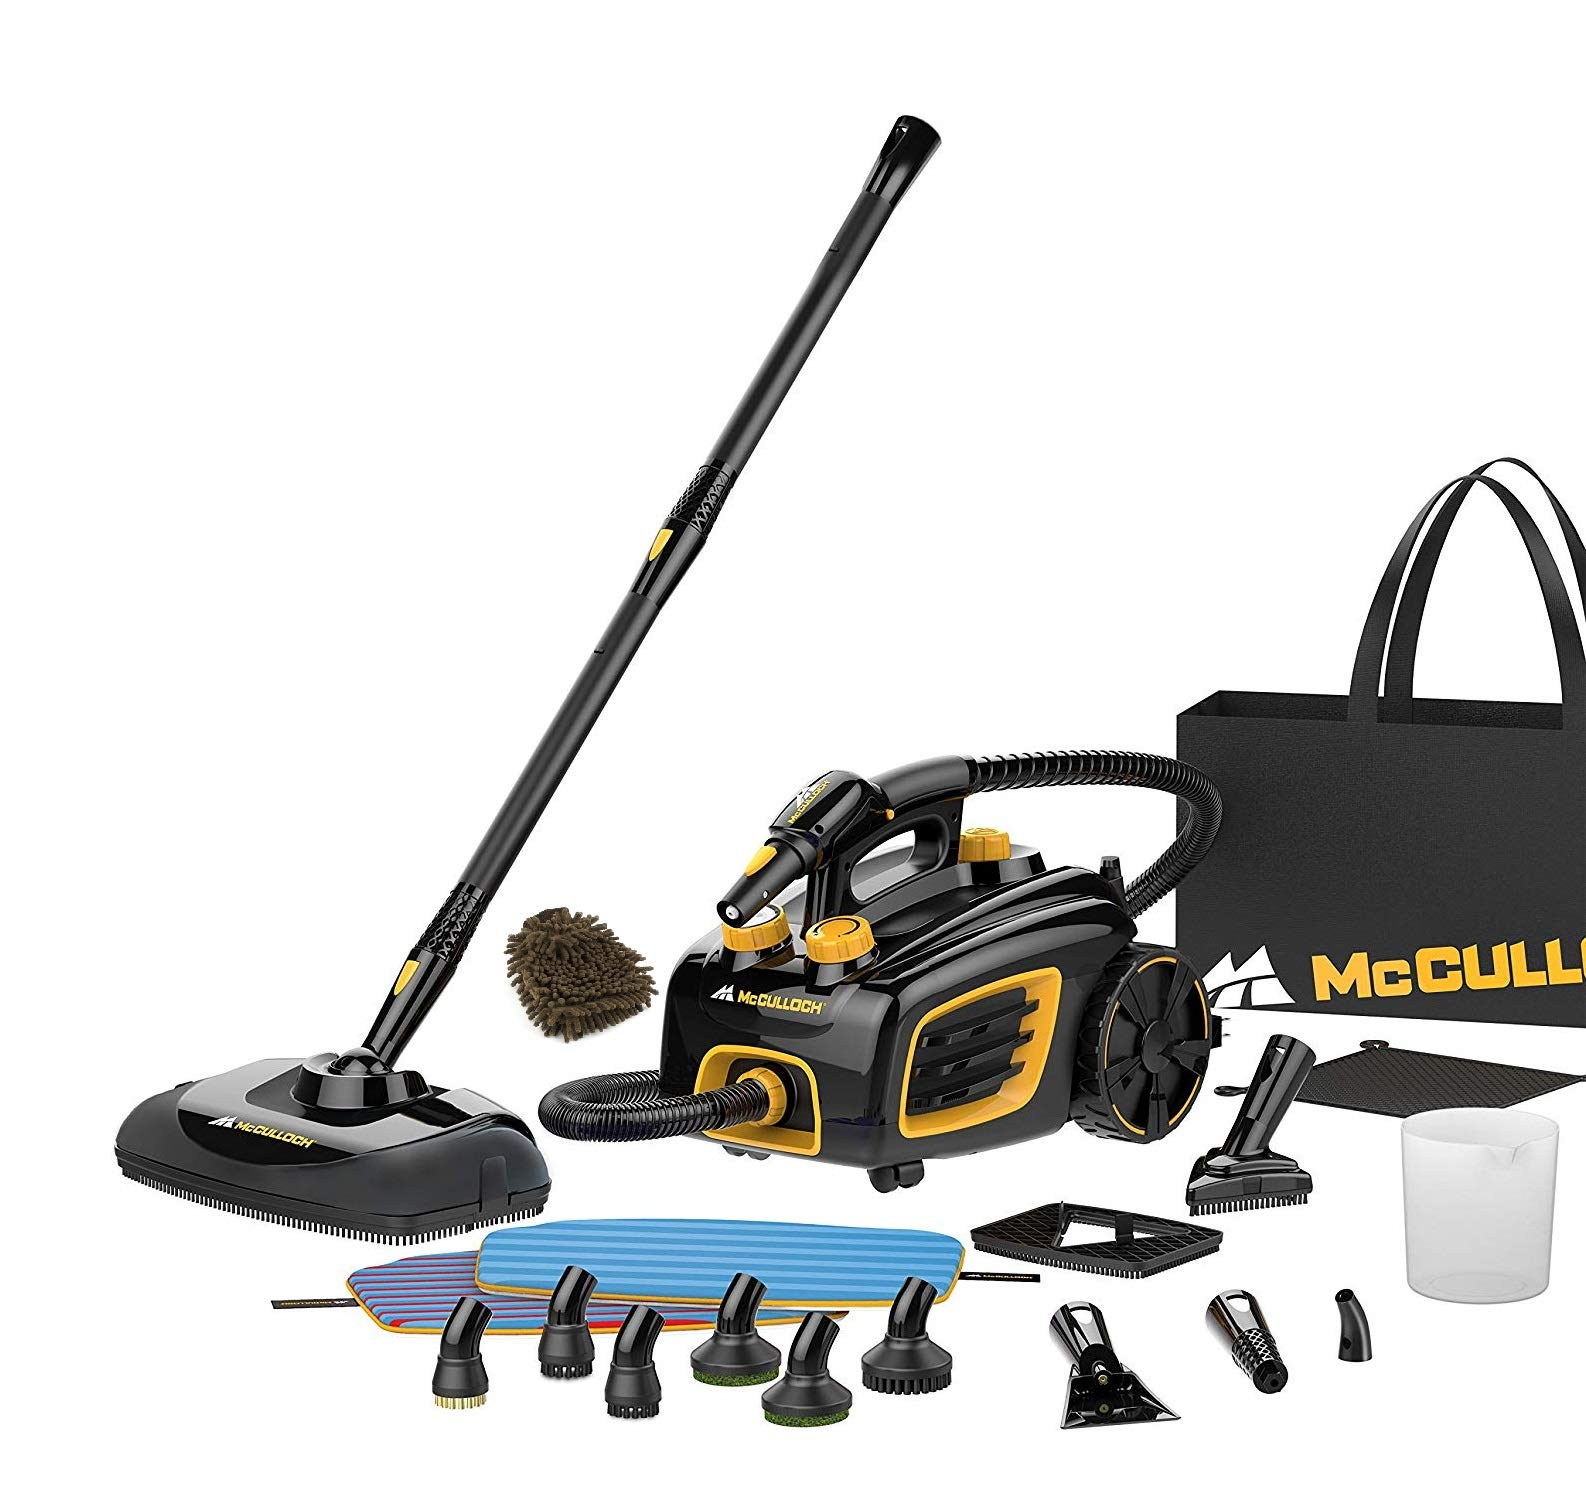 McCulloch MC1375 Canister Steam Cleaner System, Heavy-Duty (Complete Set), with Bonus Premium Microfiber Cleaner Bundle by McCulloch